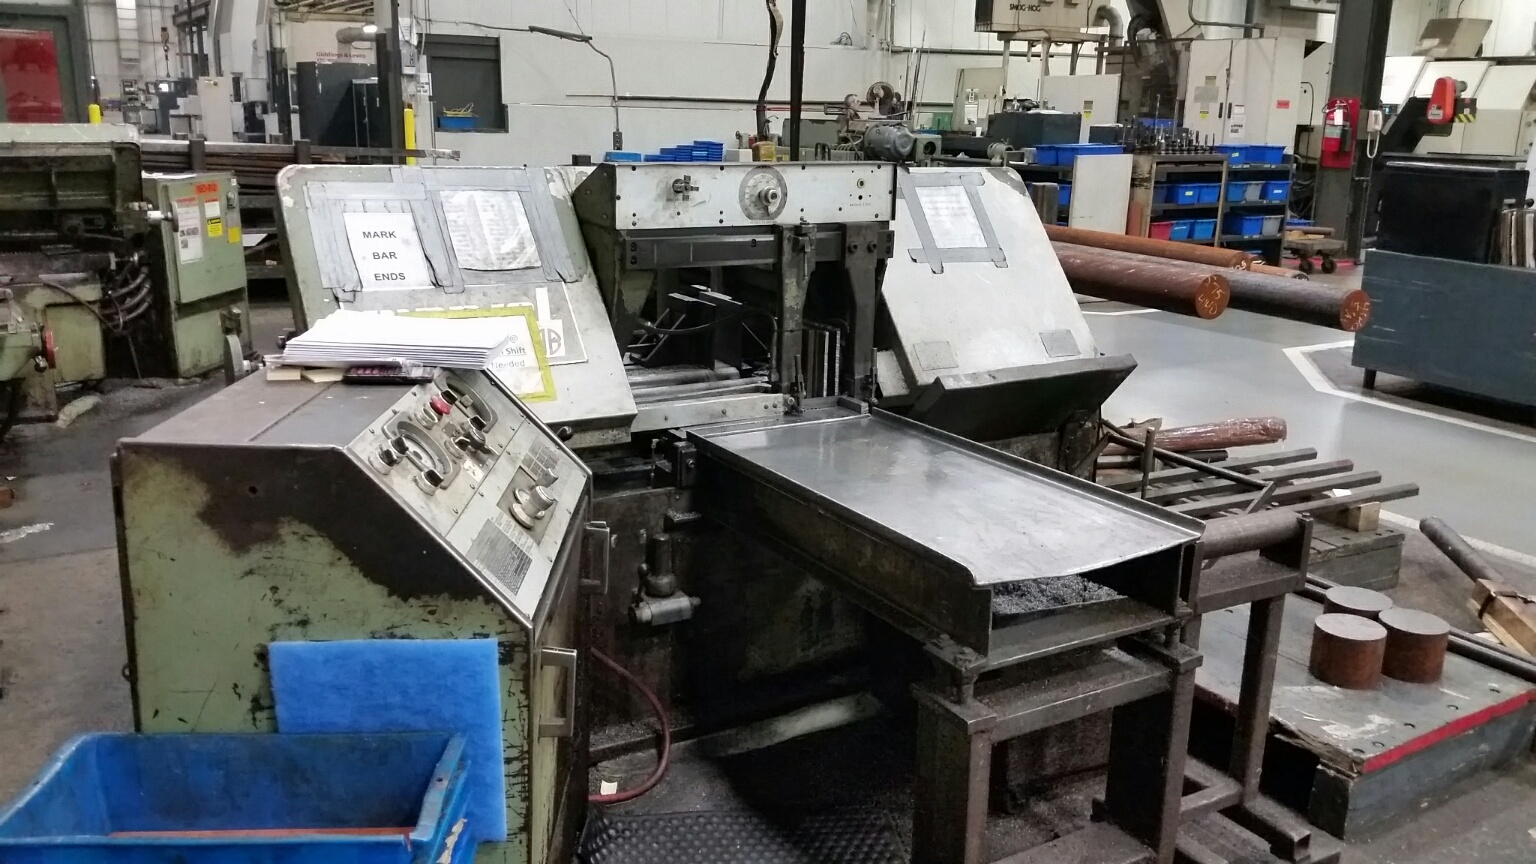 """15"""" X 20"""" MARVEL AUTOMATIC HORIZONTAL BAND SAW, Model 15A, Auto Stock Feed, Auto Down Feed, 5 HP, 1-1/4"""" Wide Blade, Coolant, Variable Blade Speed. New 1981. (2 avail)"""